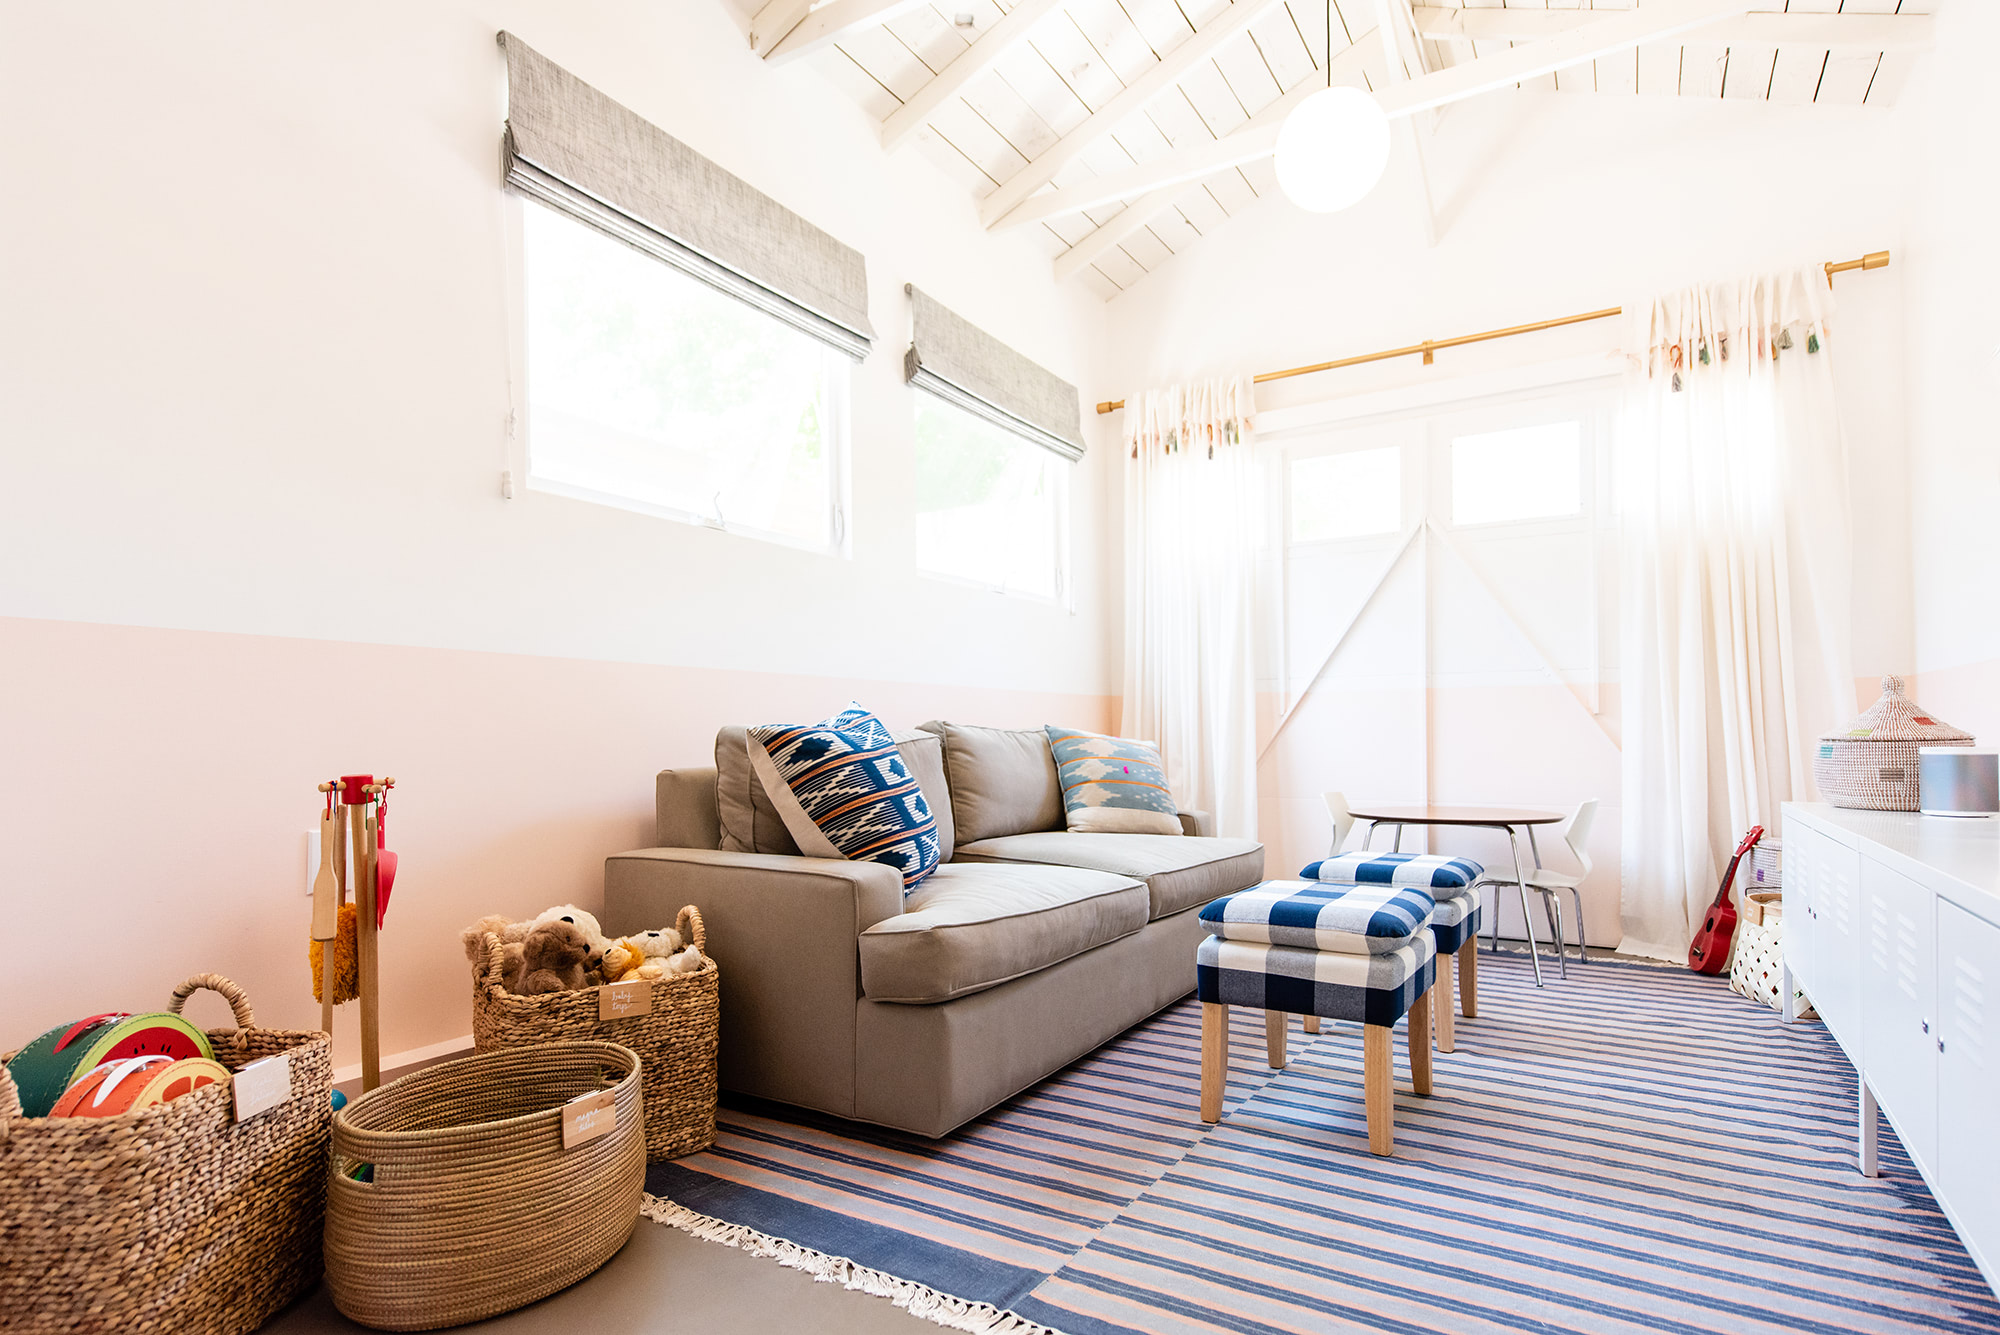 Light, linen Roman shades let the blue-striped rug and patterned pillows pop in this play room.